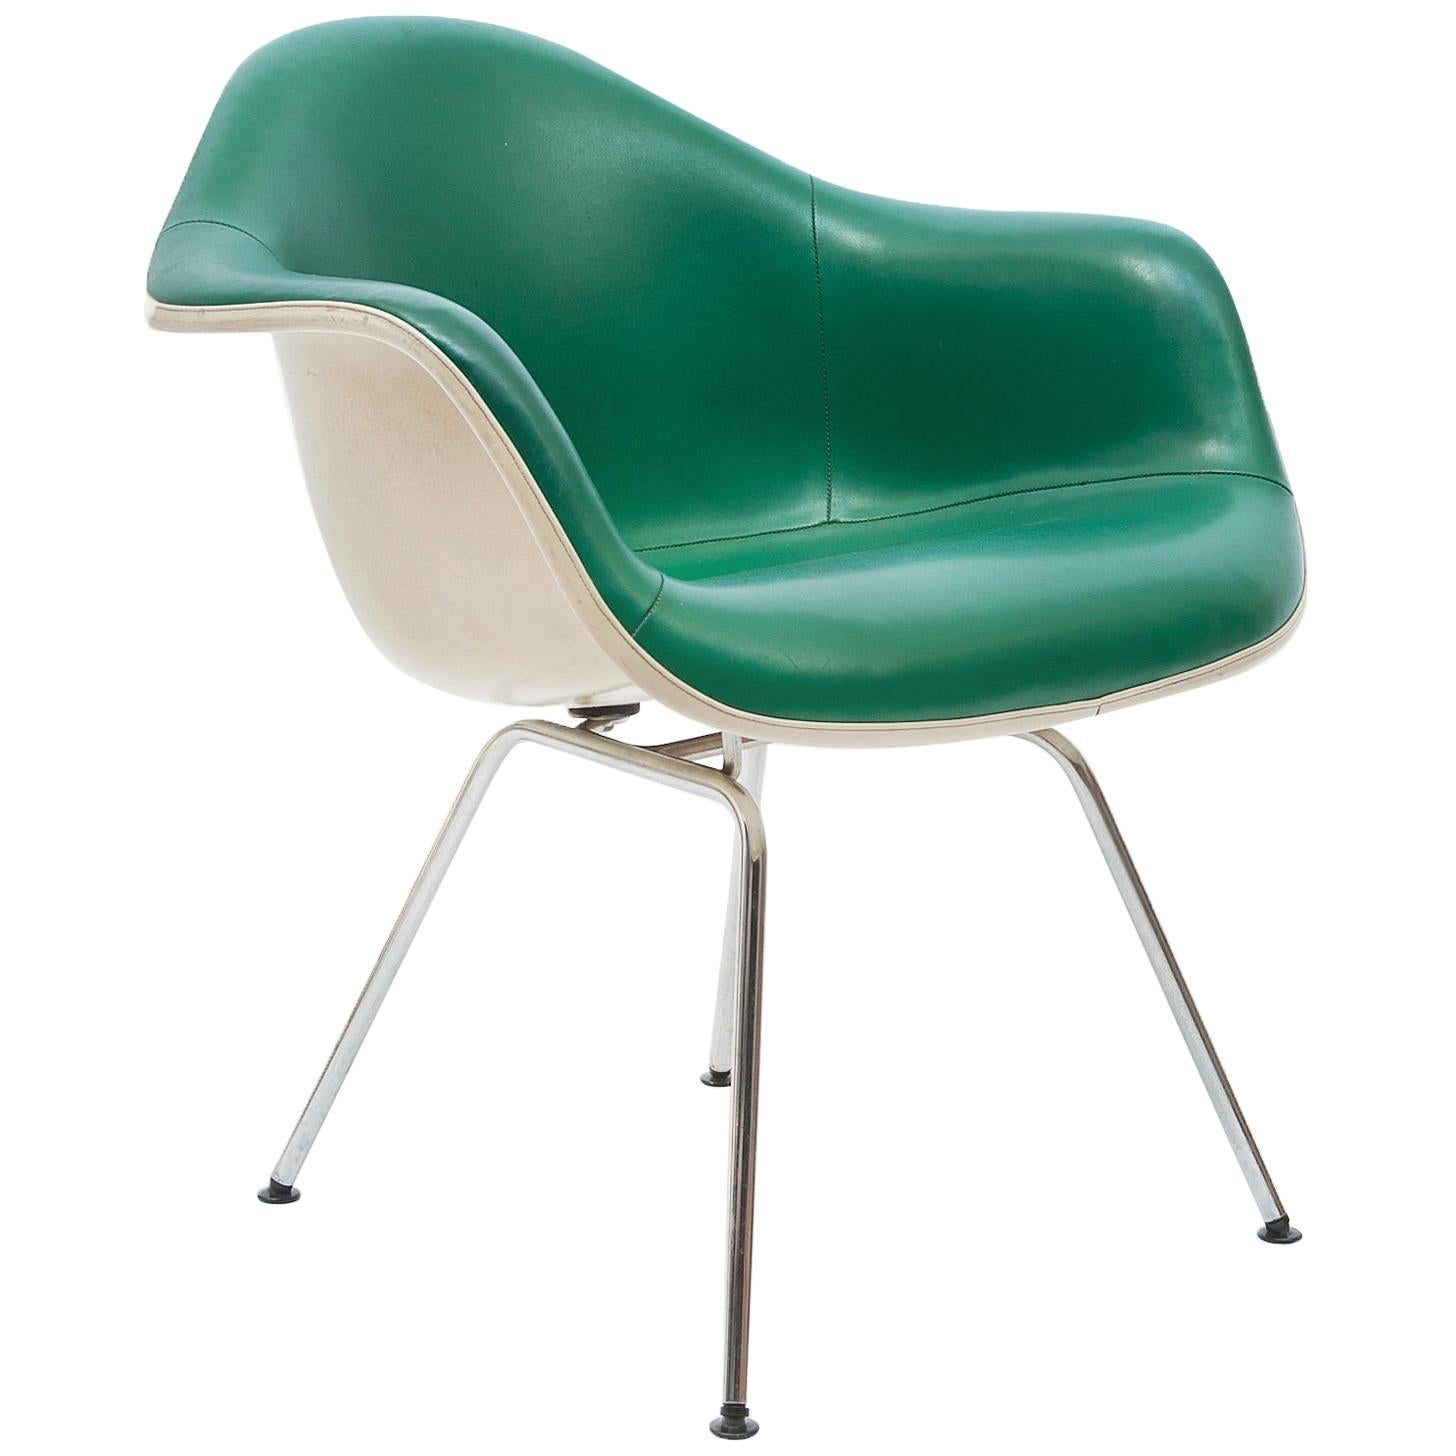 Green Leather 'Dax' Armchair by Charles & Ray Eames, 1960s